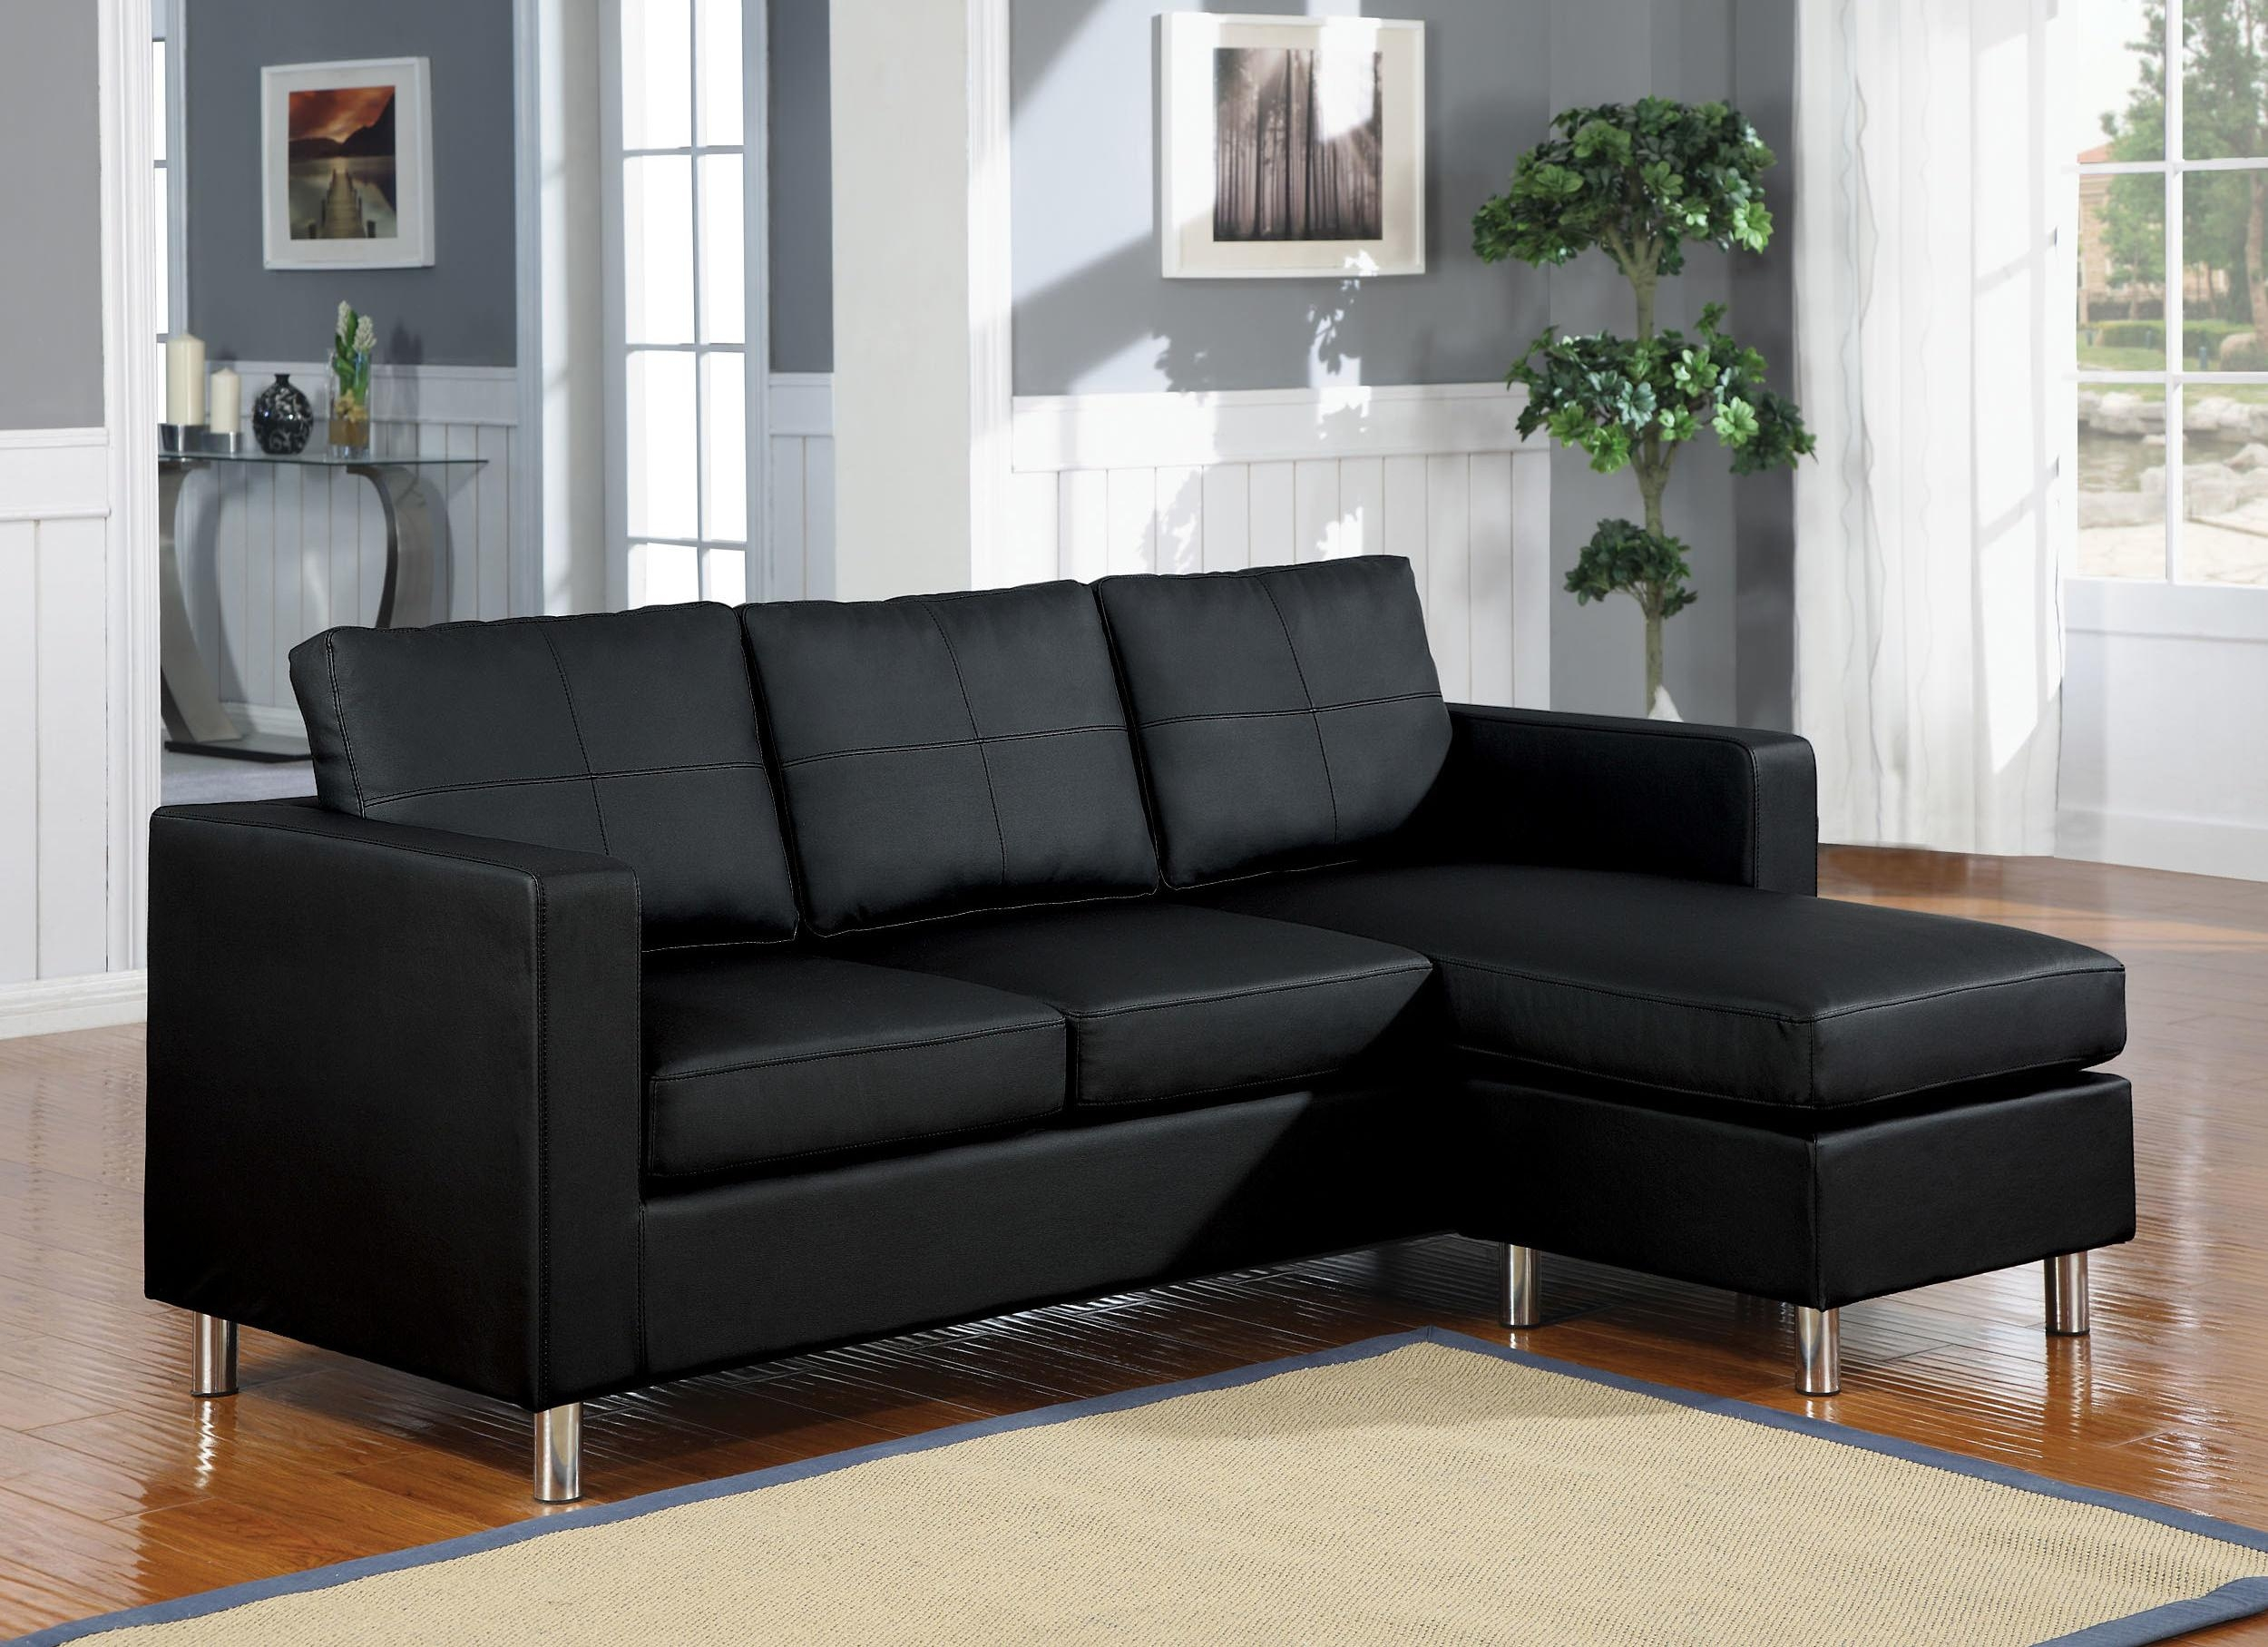 Furniture & Sofa: Perfect Small Spaces Configurable Sectional Sofa For Small Sofas With Chaise Lounge (Image 5 of 20)